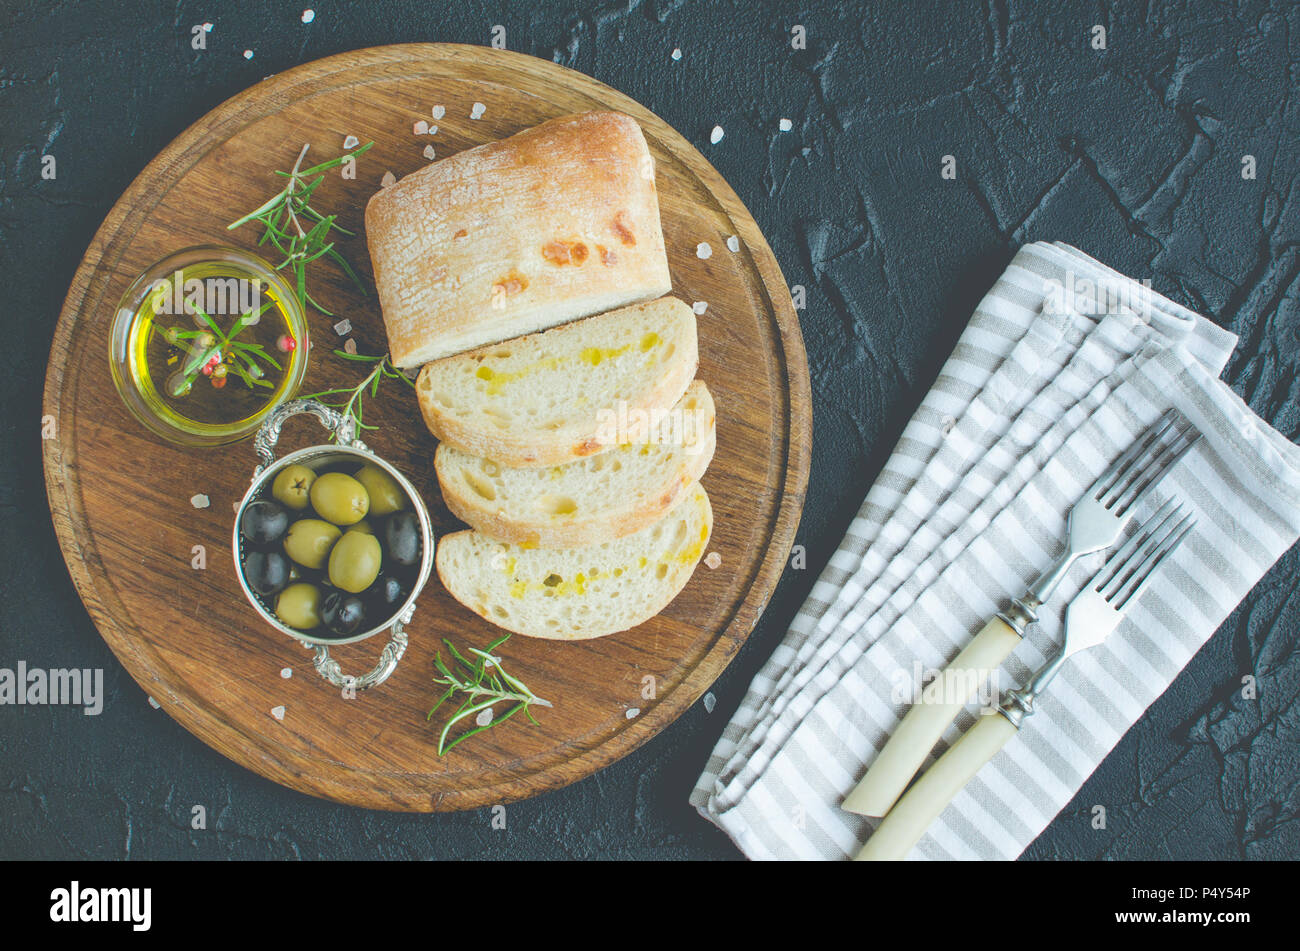 Mediterranean snacks set. Green and black olives, olive oil, herbs and sliced ciabatta bread on wooden board over dark stone background. Italian food  - Stock Image